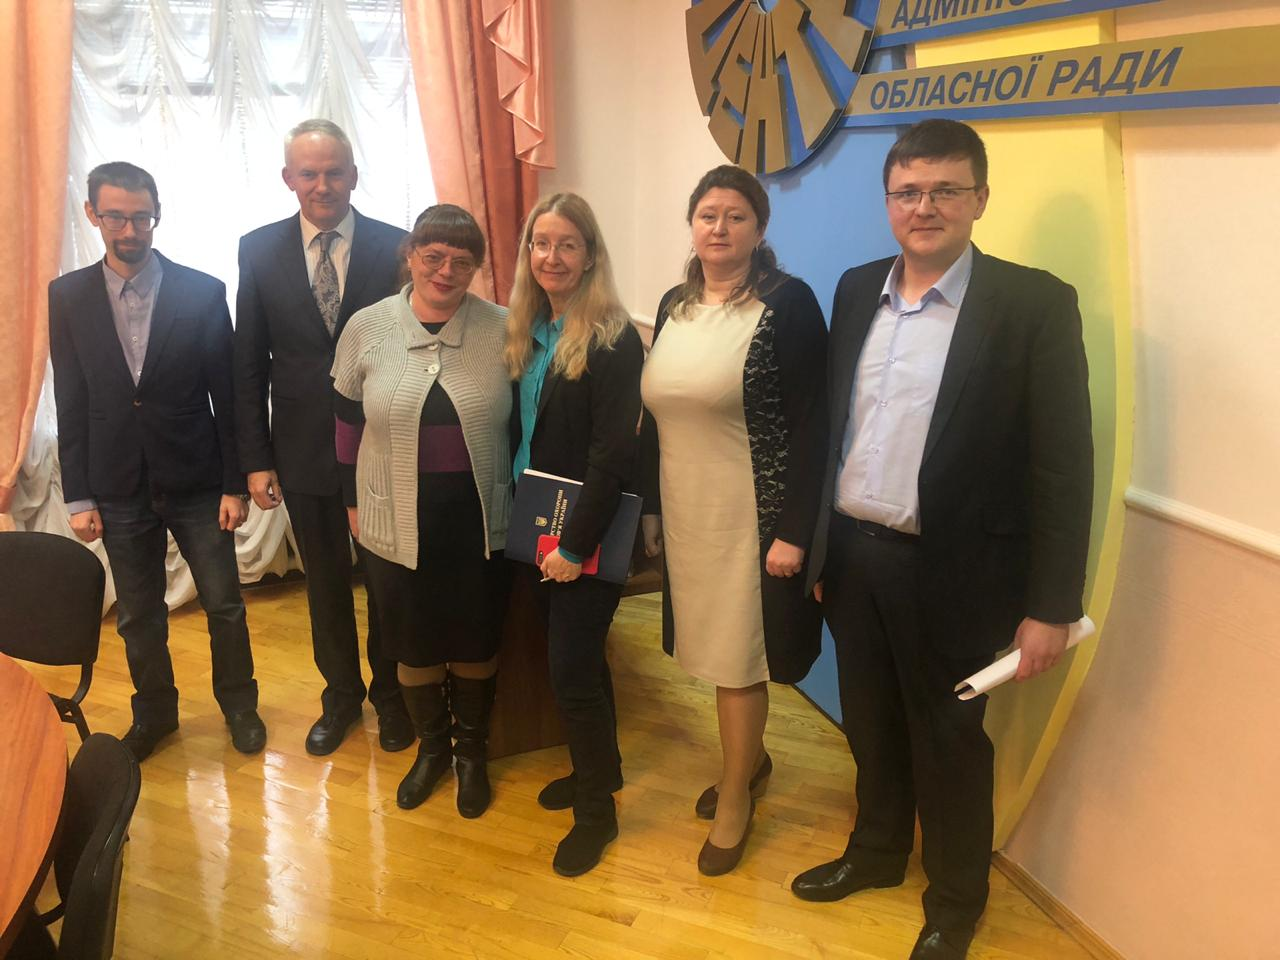 Ulyana Suprun met with hromada leaders from Zhytomyr Oblast